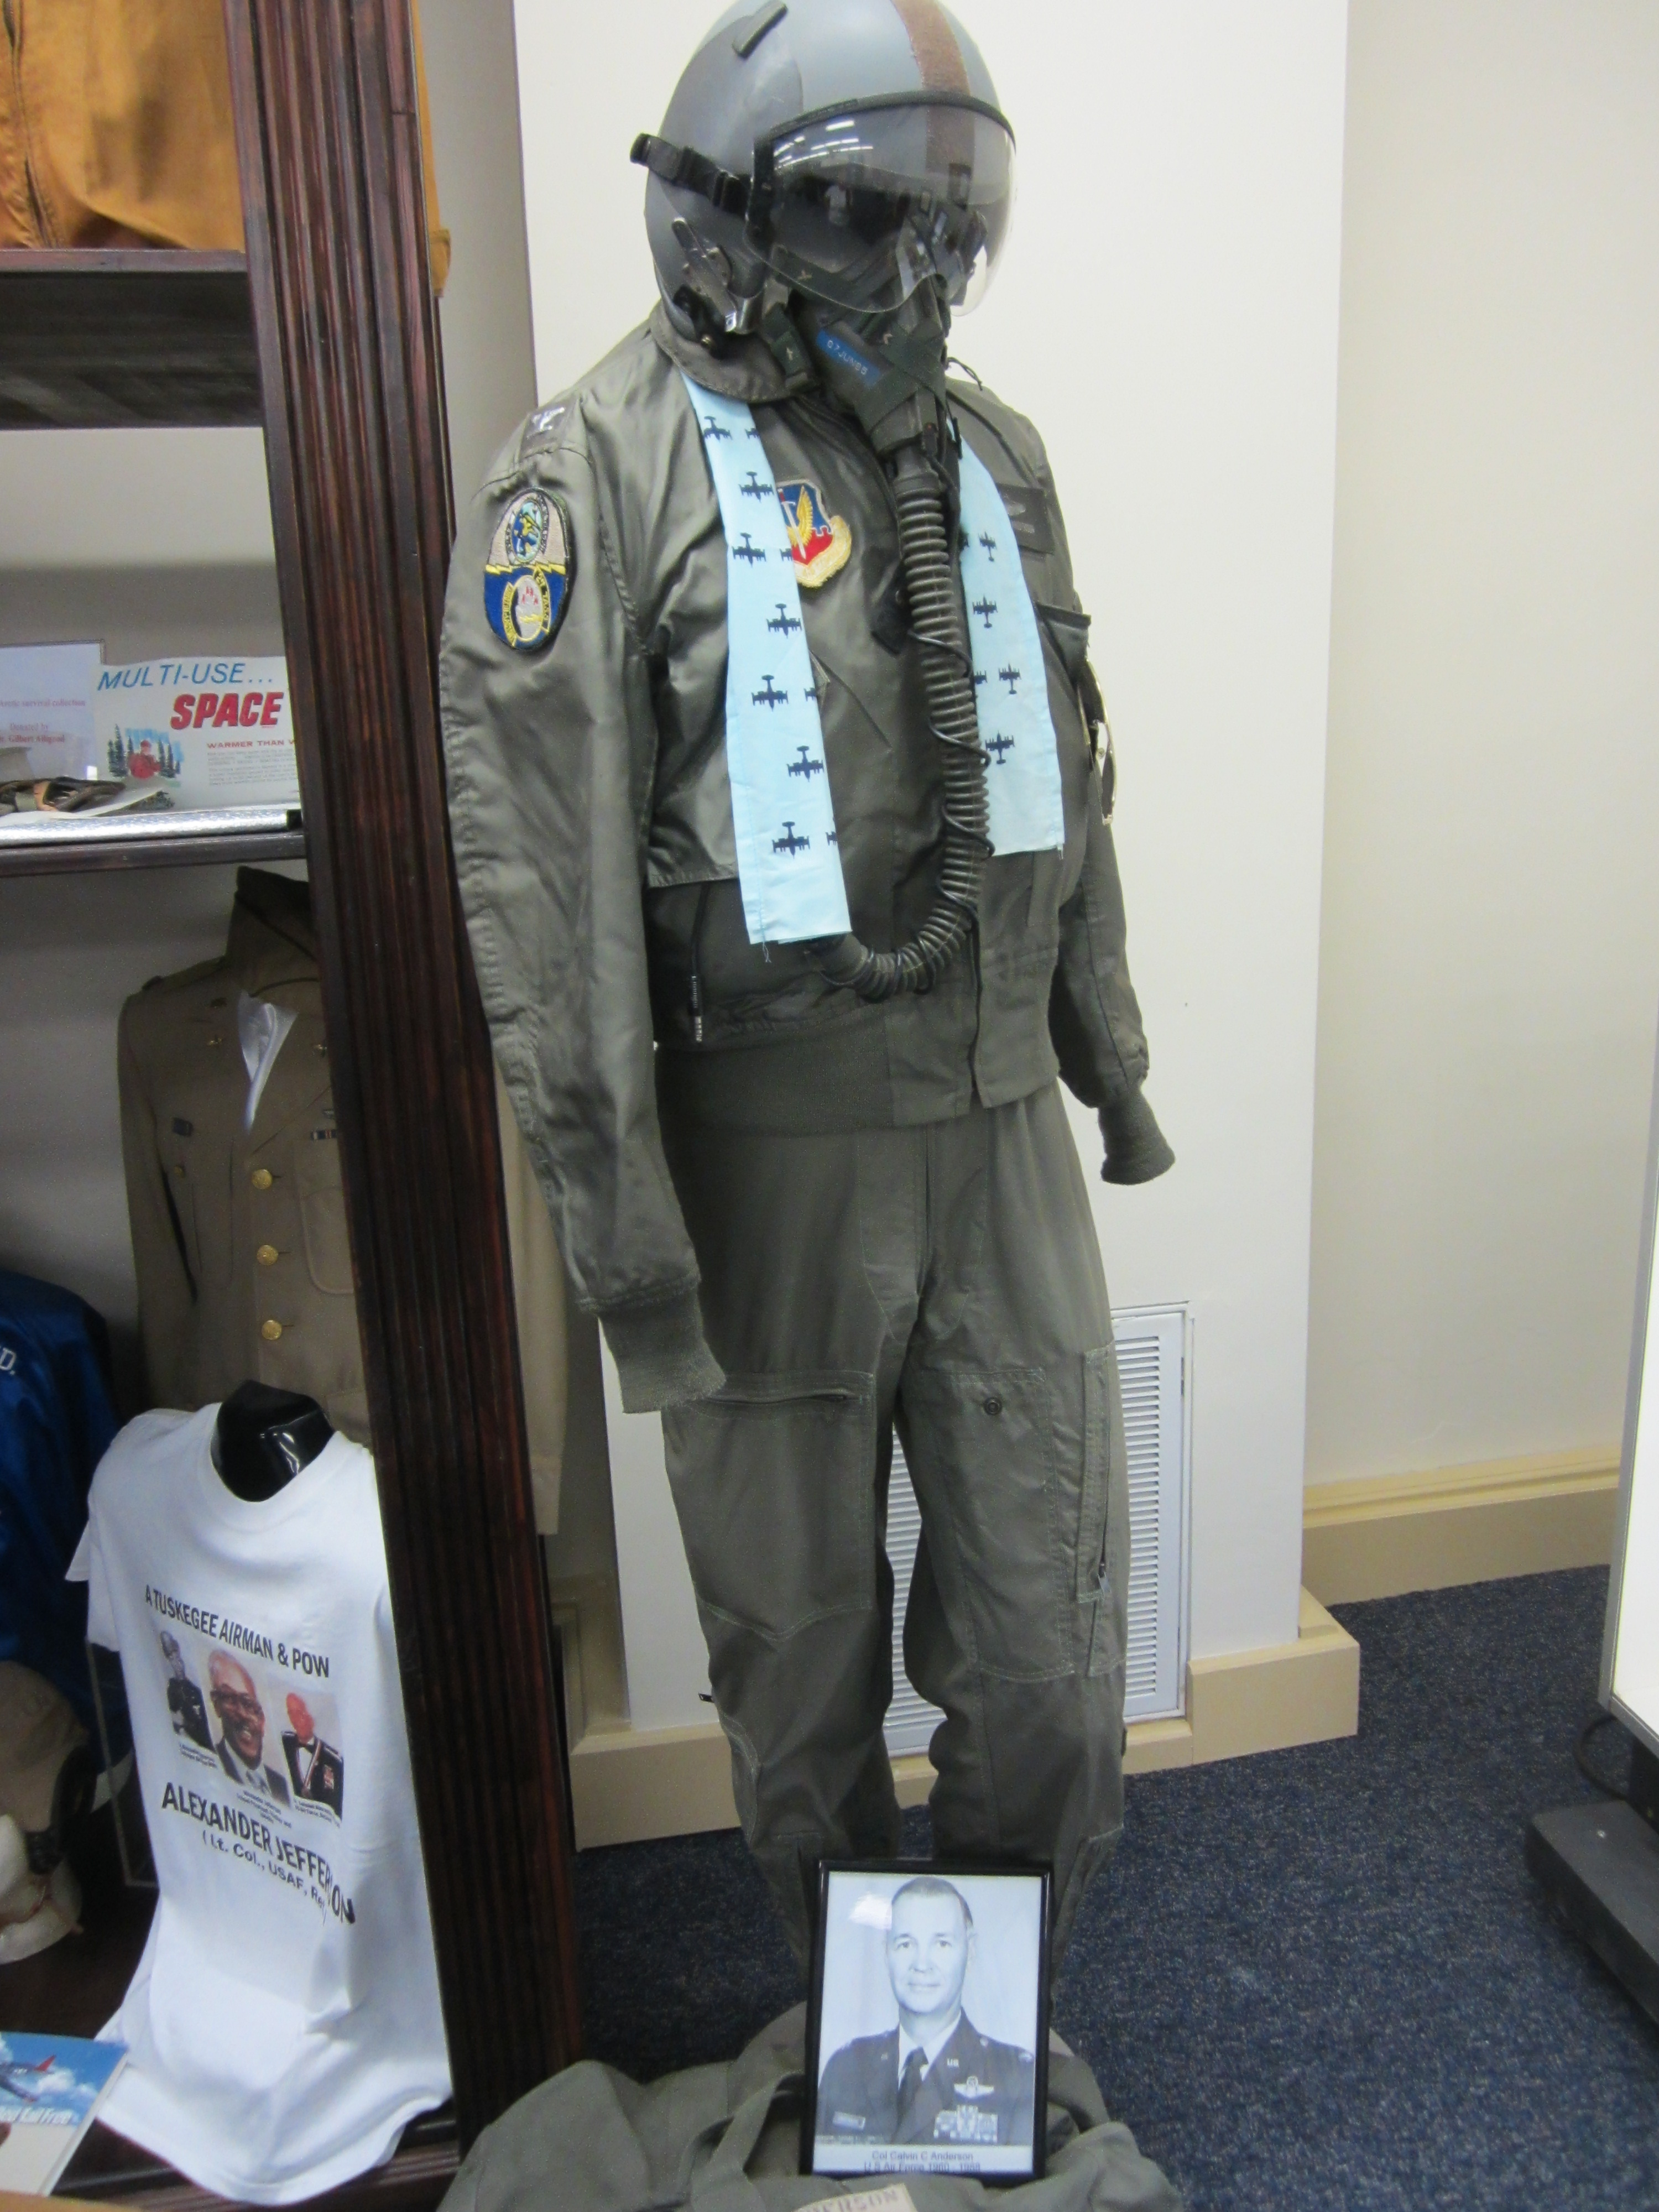 Col. Calvin Anderson's Vietnam Era flight suit.